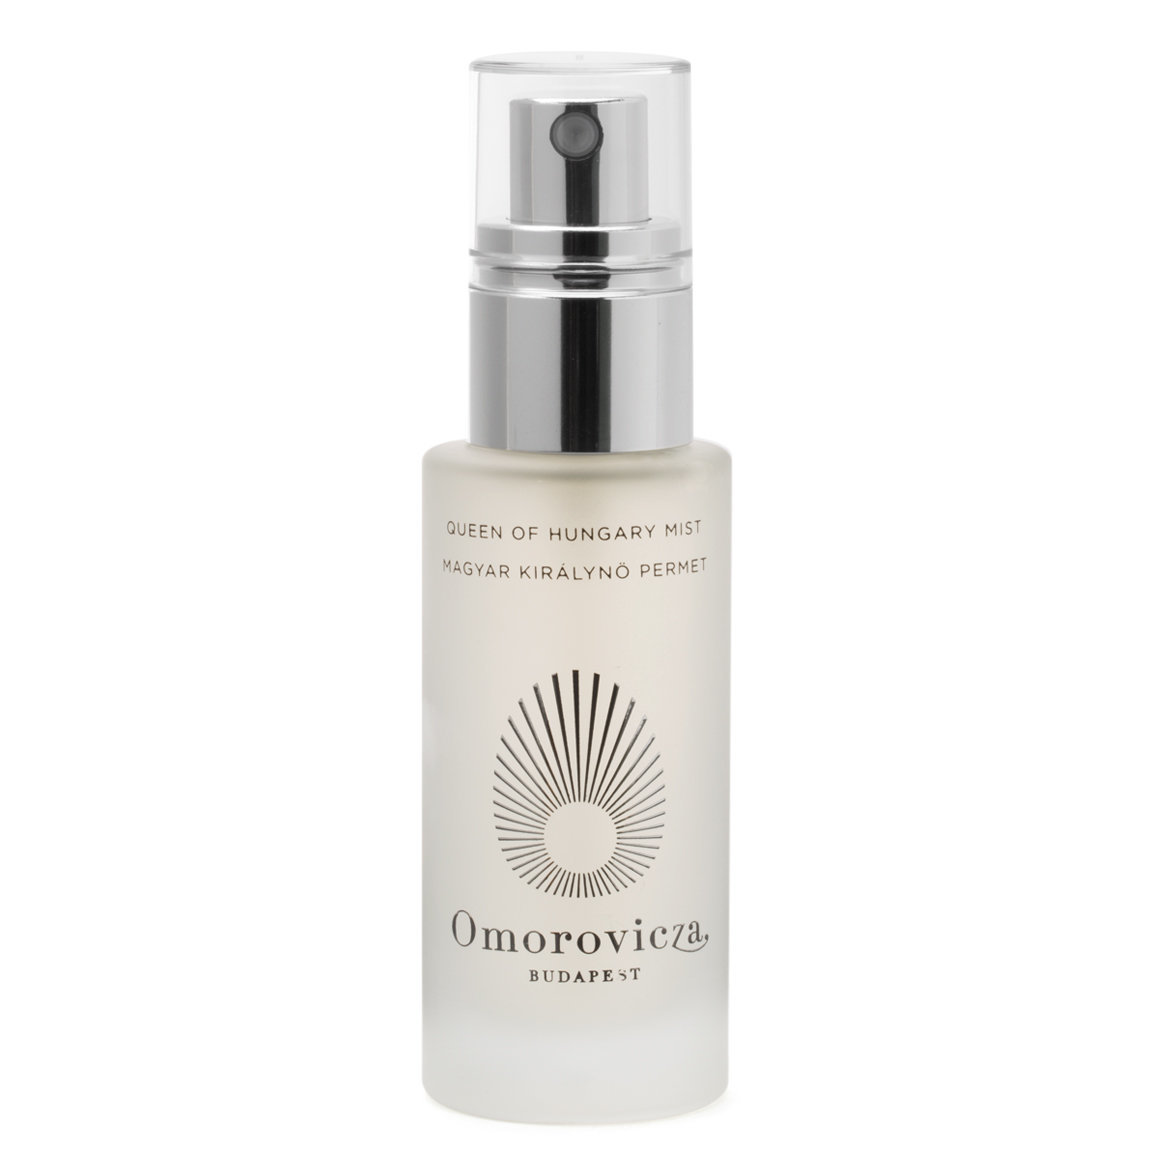 Omorovicza Queen of Hungary Mist 30 ml alternative view 1 - product swatch.